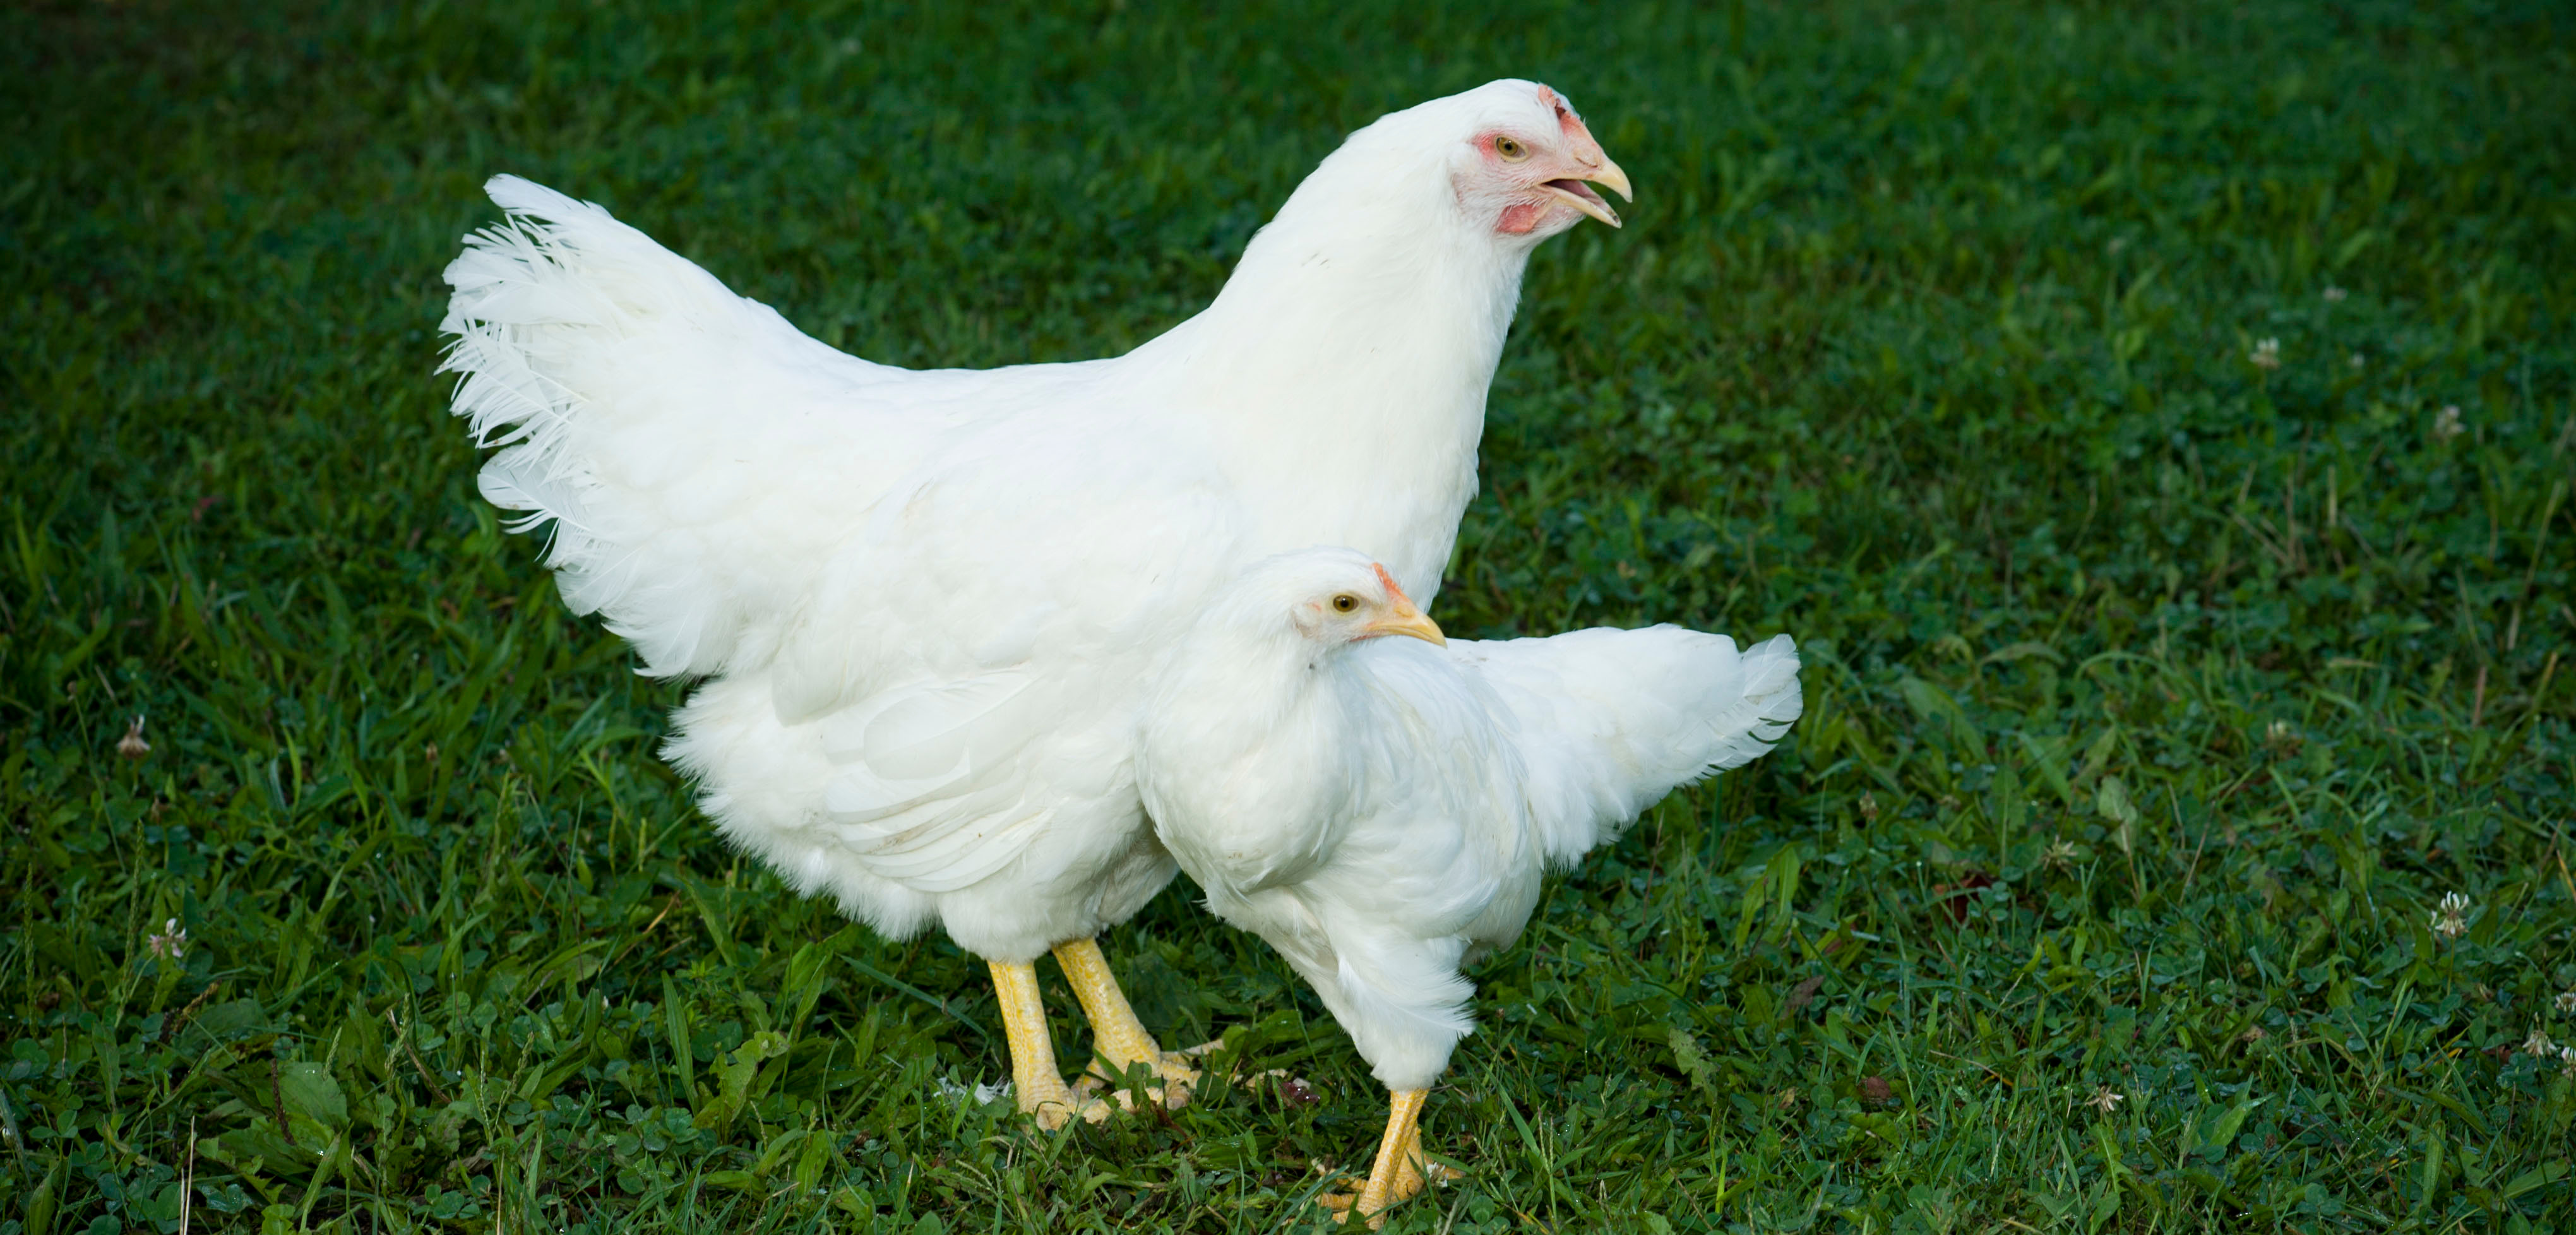 Chicken study reveals evolution can happen much faster than thought